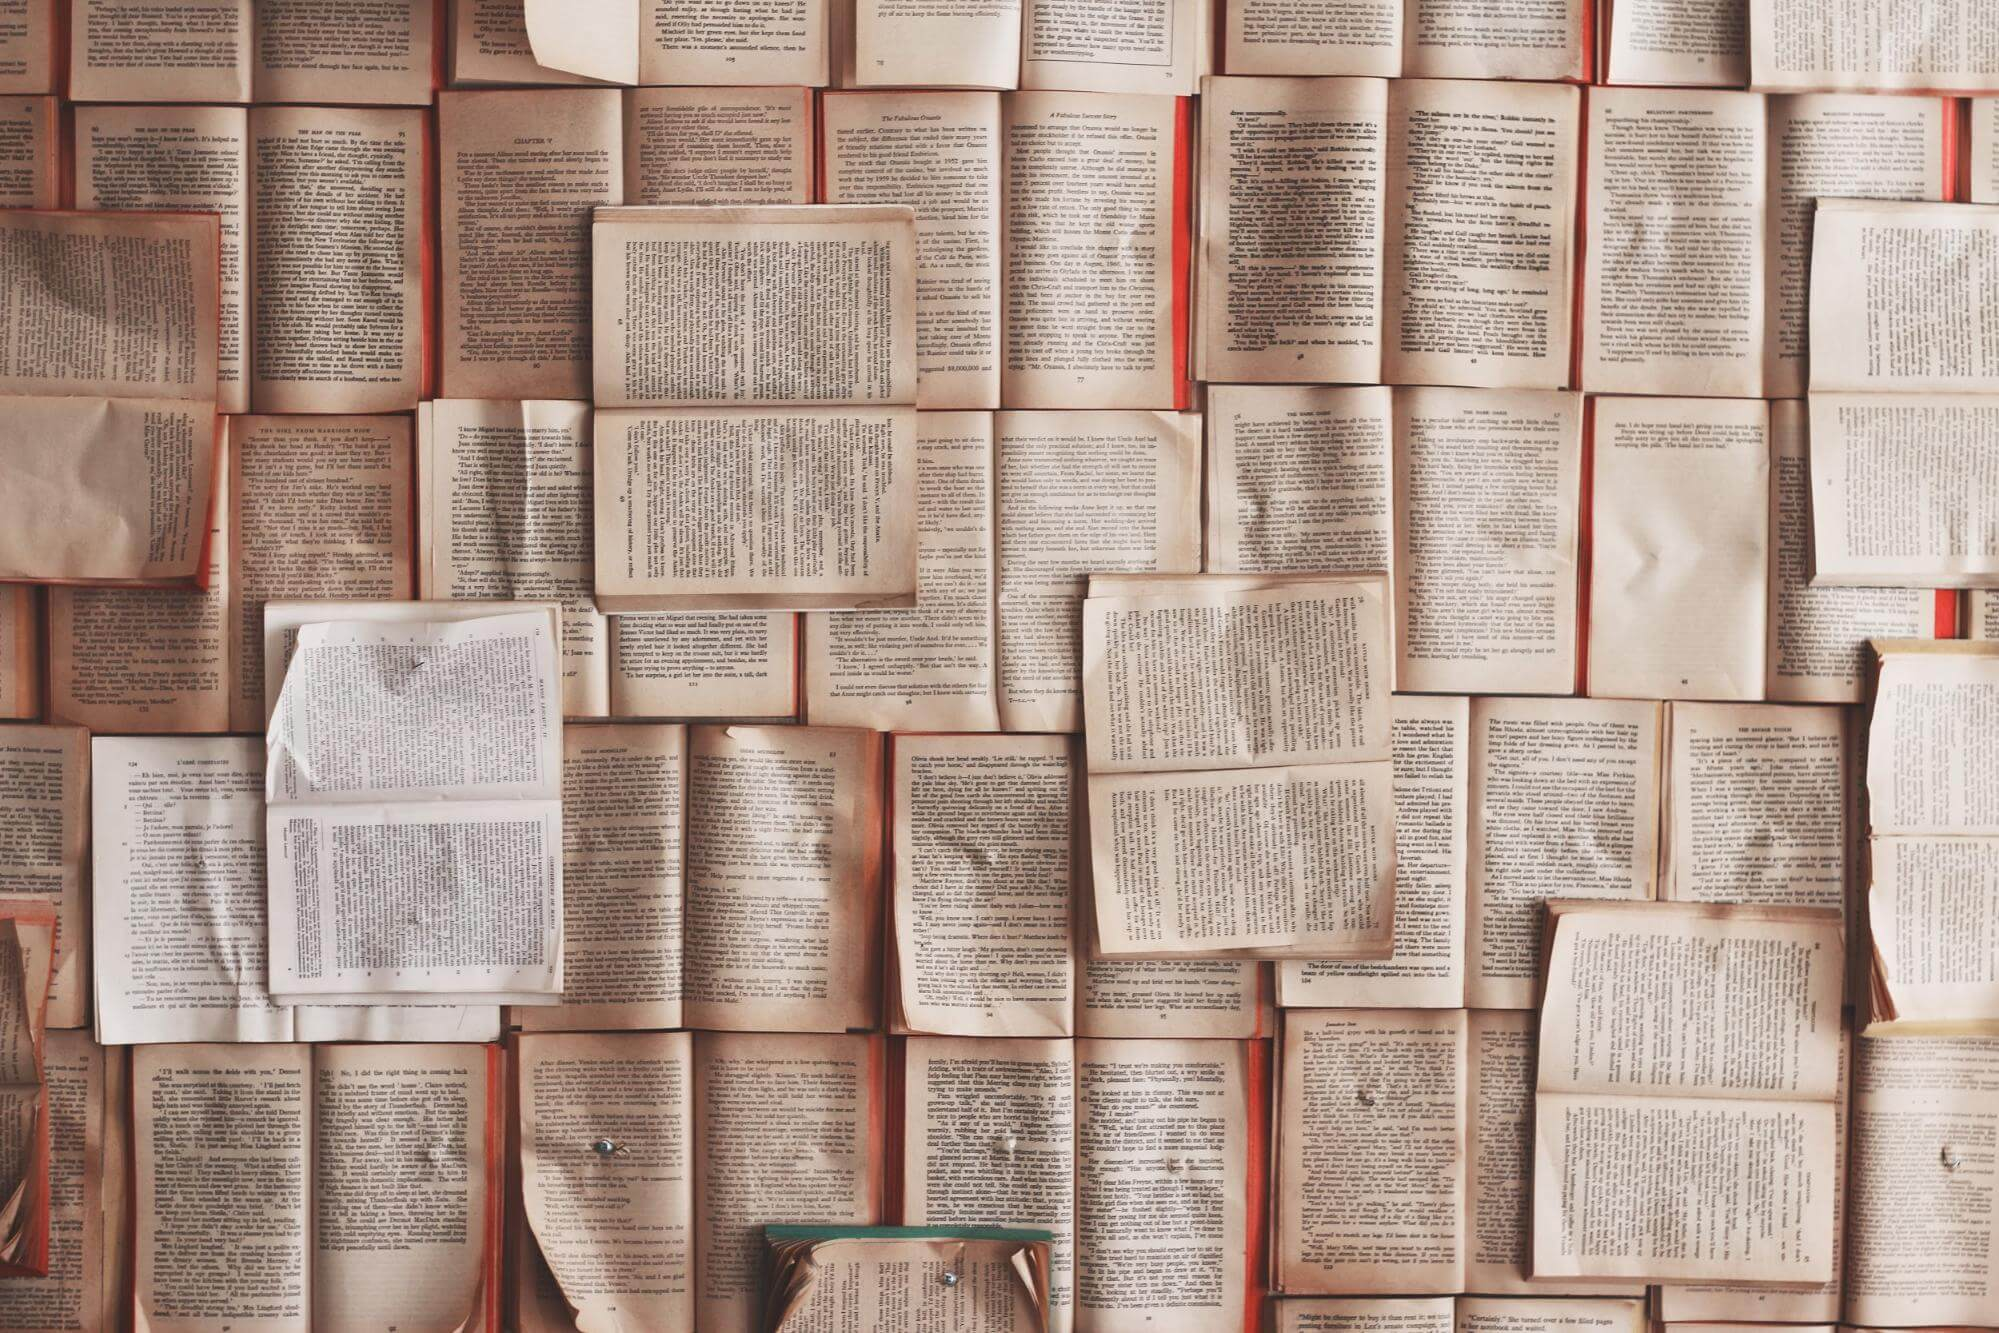 Books nailed to a wall